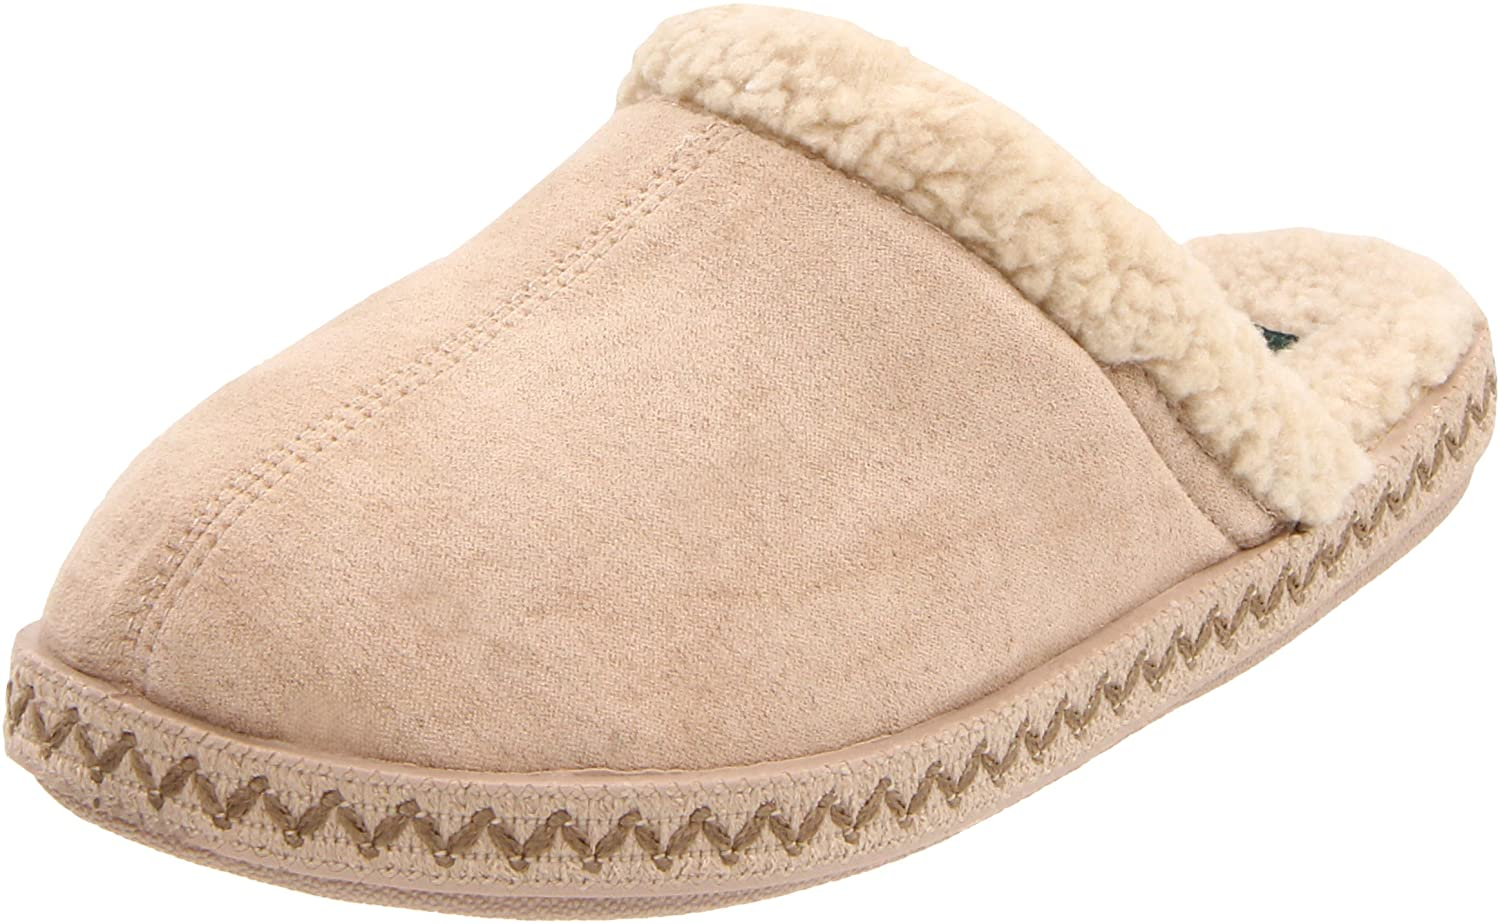 Woolrich Women's Sugarberry Scuff Slipper